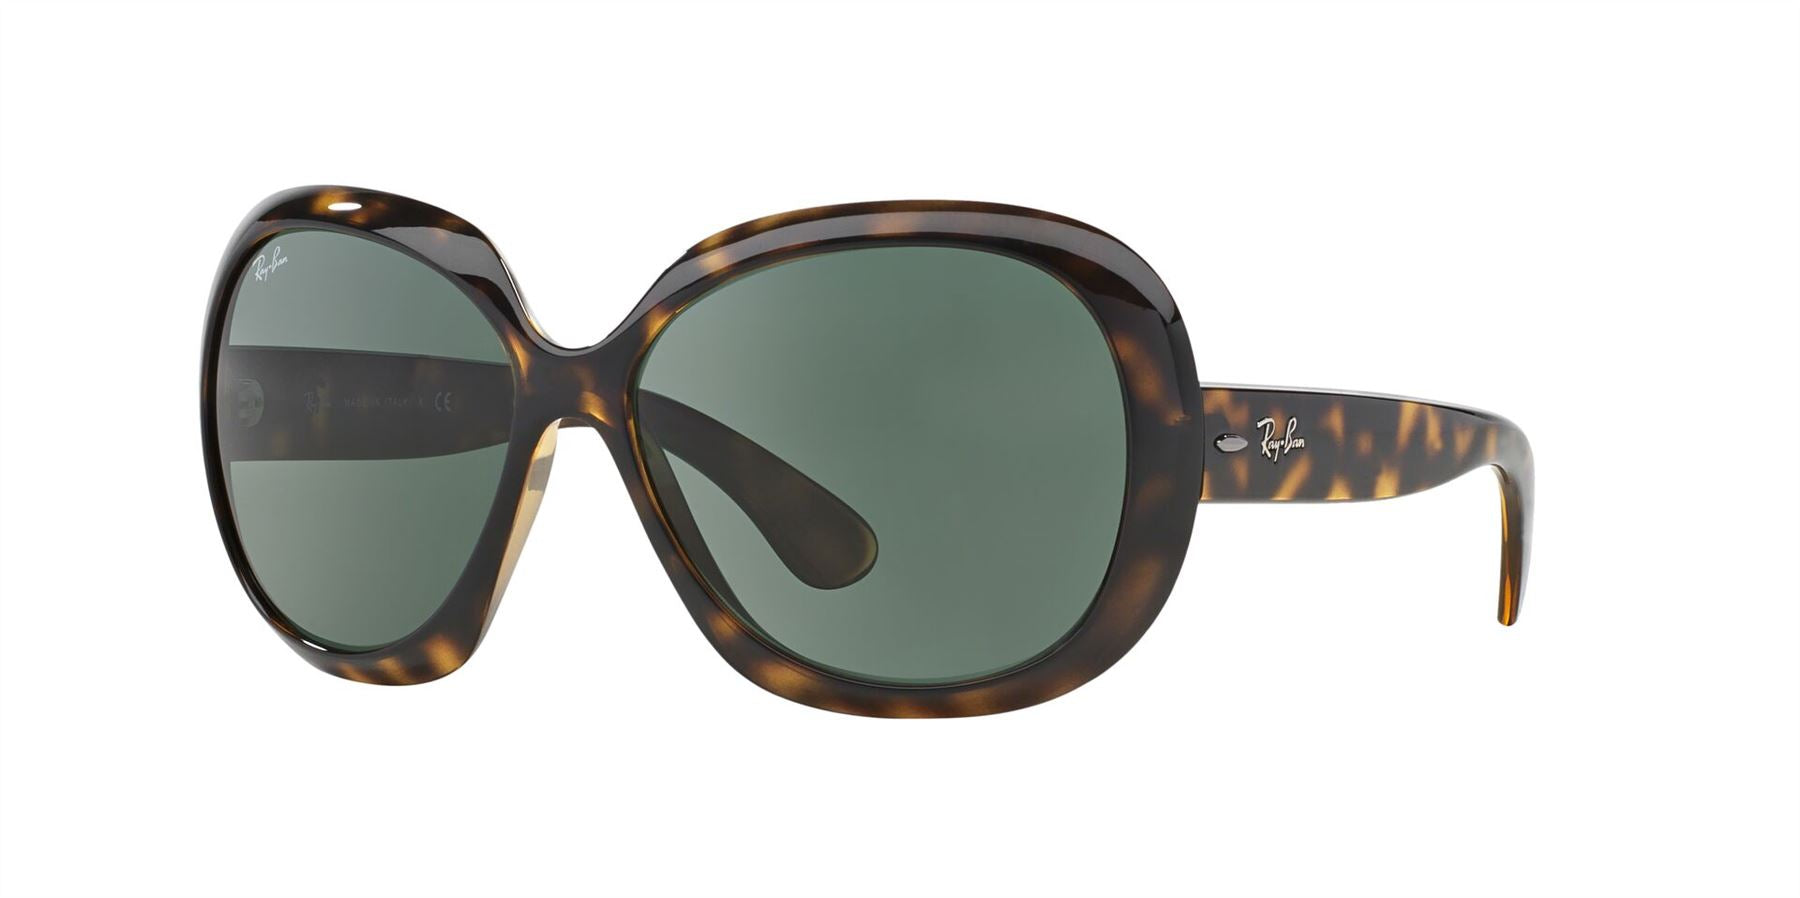 Ray-Ban Sunglasses JACKIE OHH II RB4098 710/71 Light Havana/Green - Size - 60